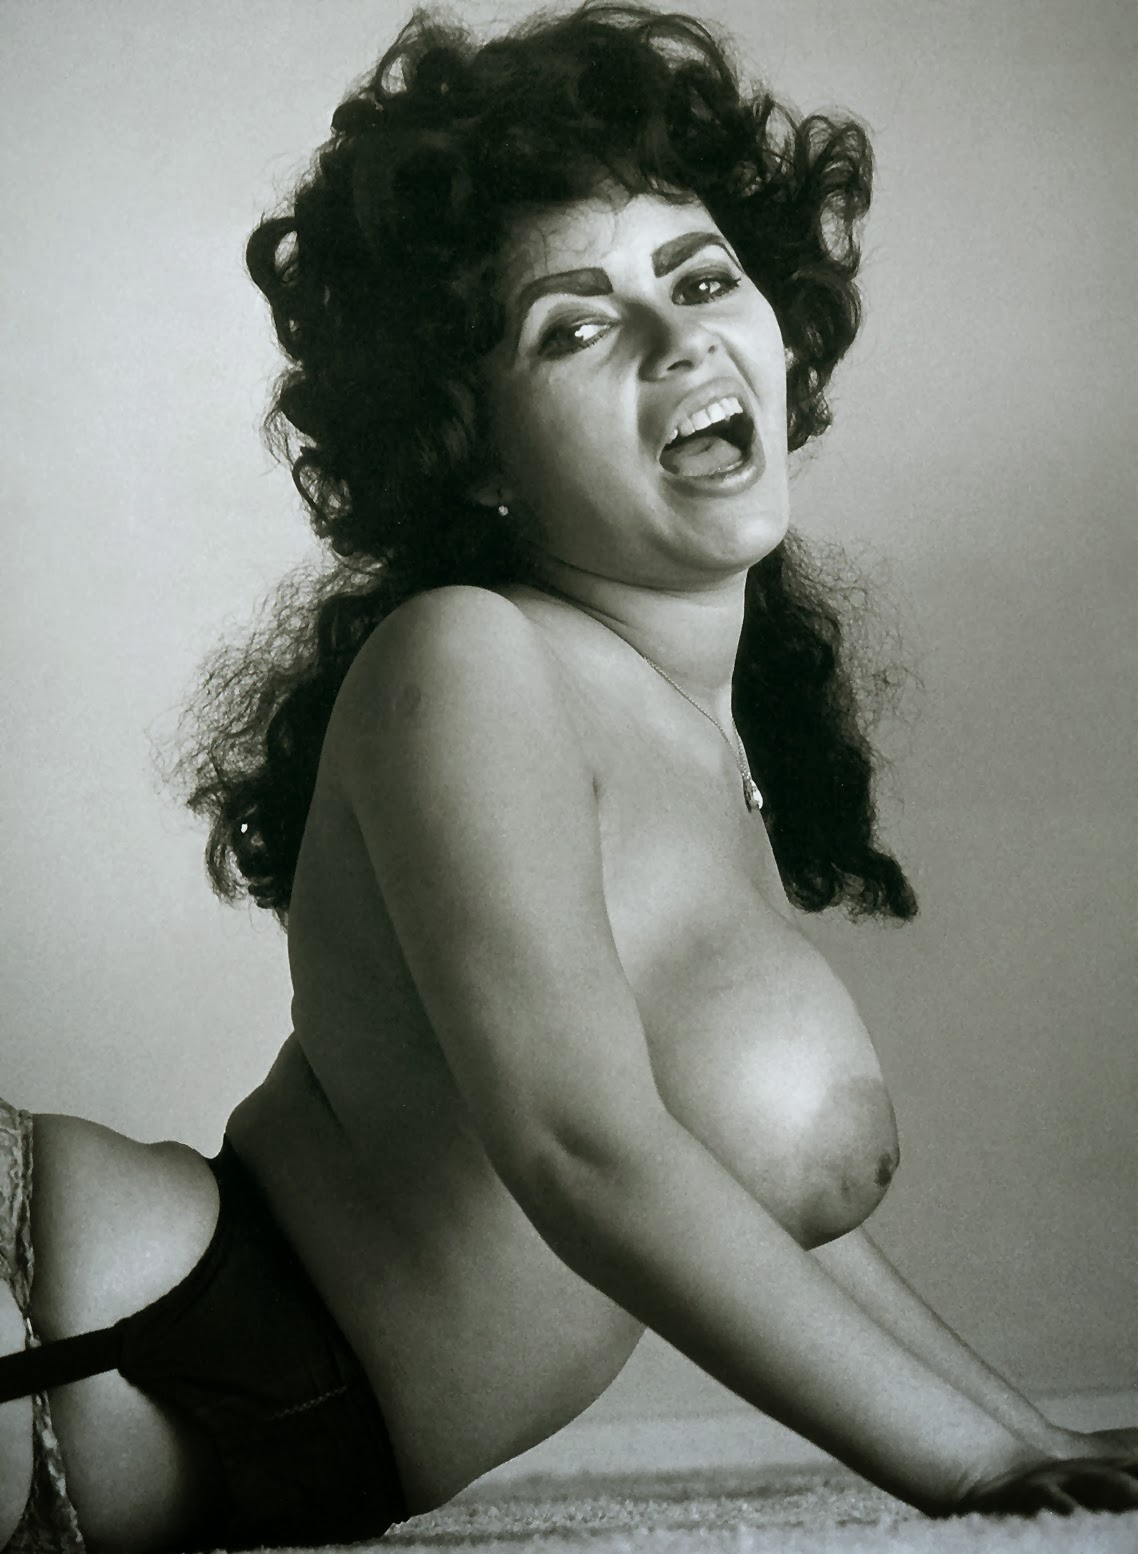 Vintage Retro And Modern Day Boobs Pics